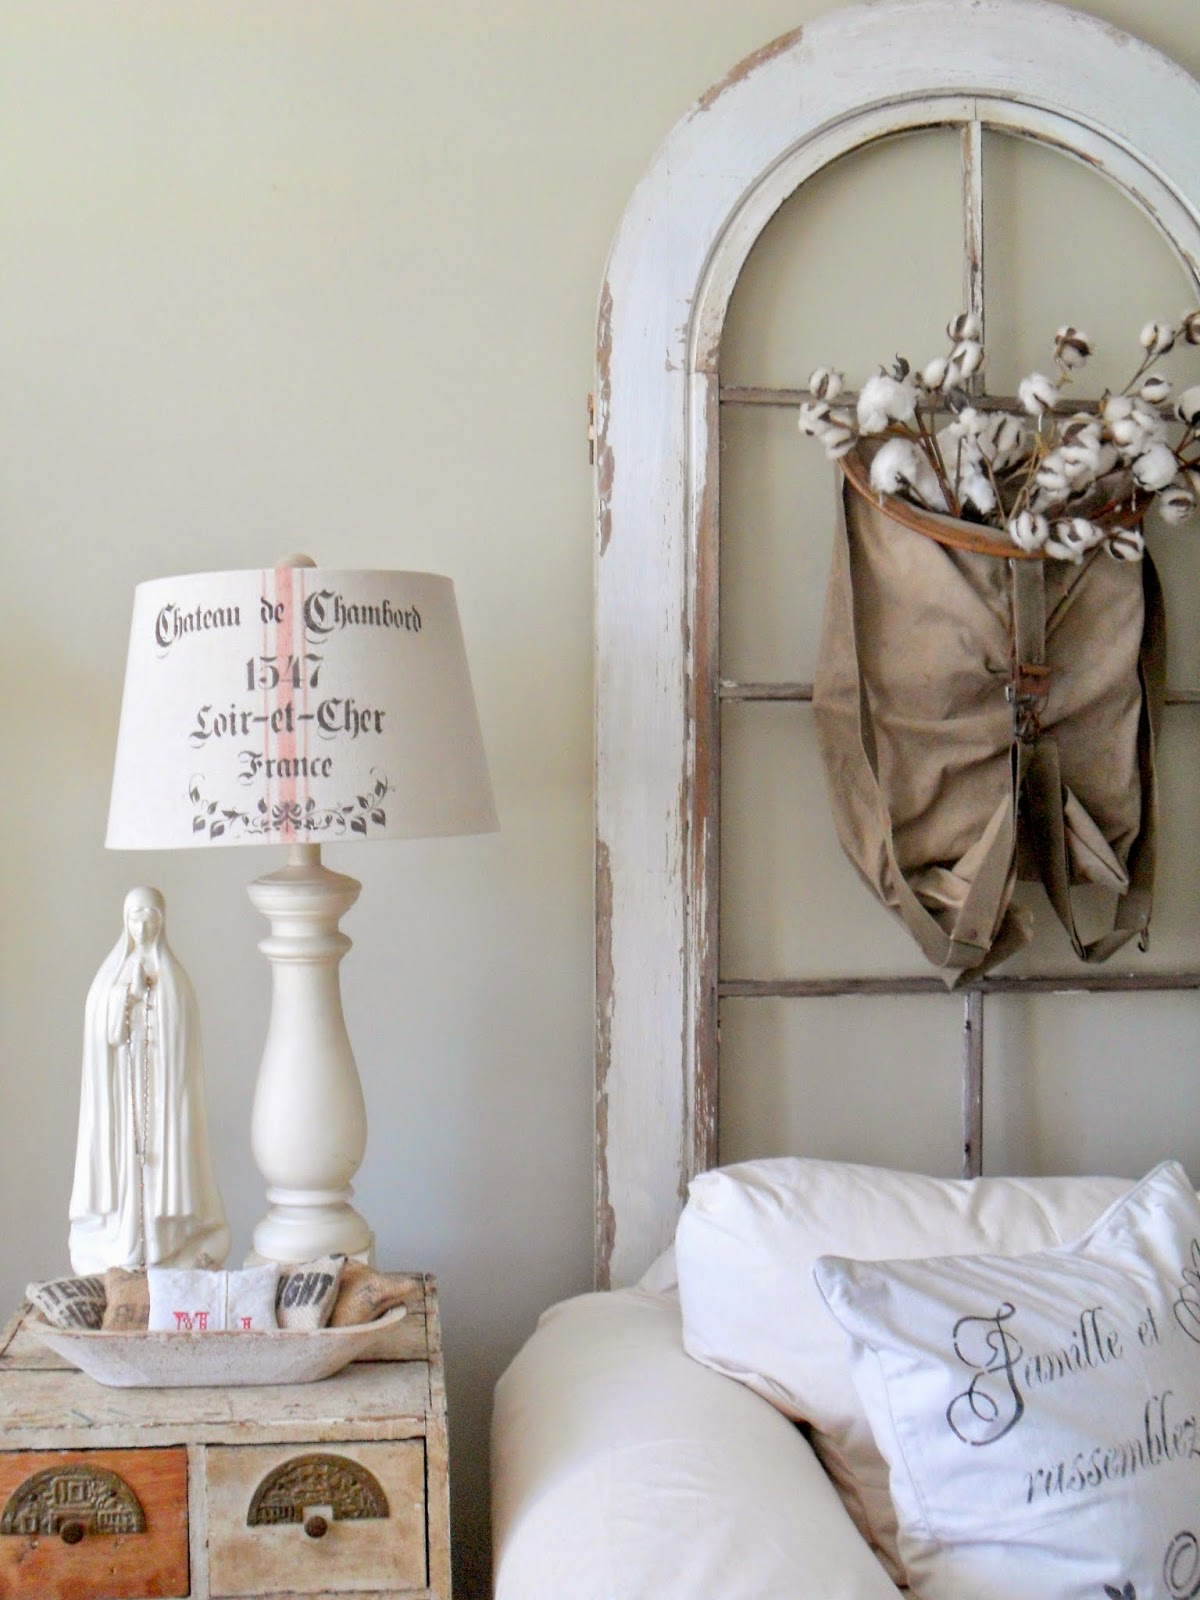 must love junk: Living Room Vignettes